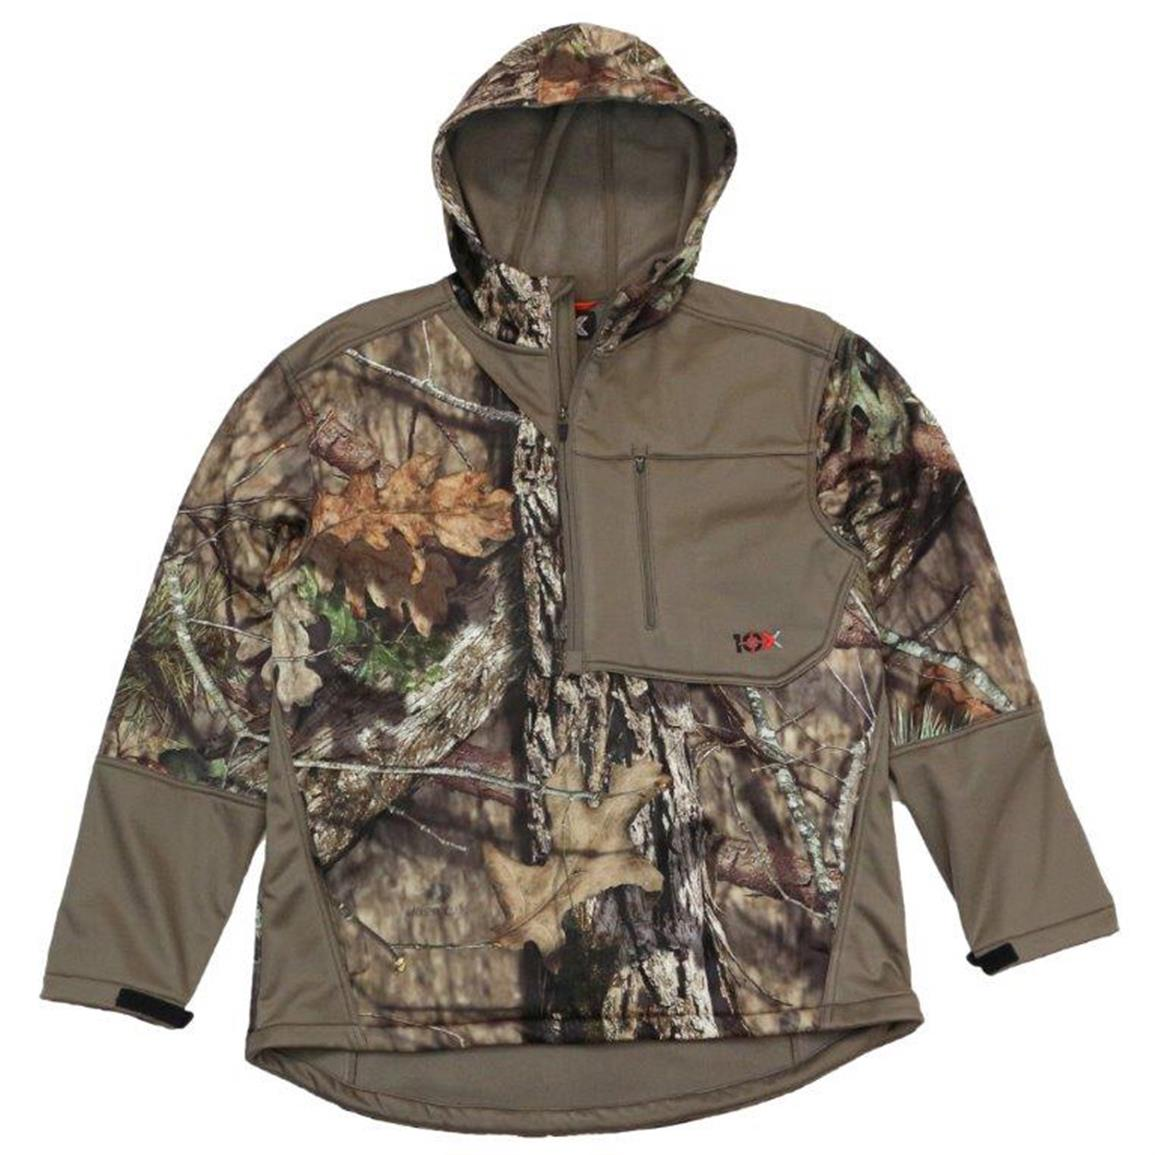 10X Men's Tech Hoodie, Realtree Xtra